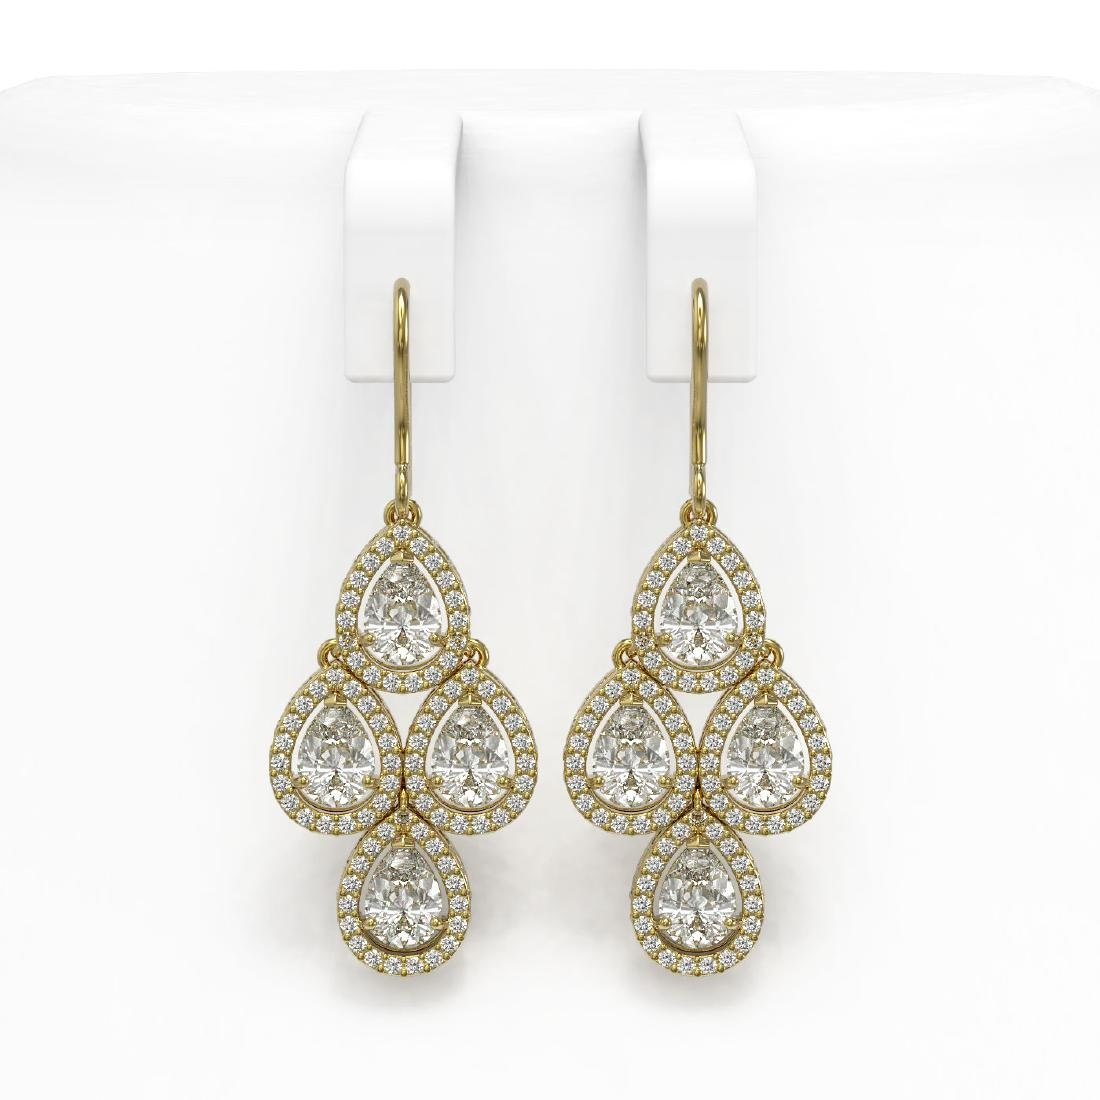 5.22 CTW Pear Diamond Designer Earrings 18K Yellow Gold